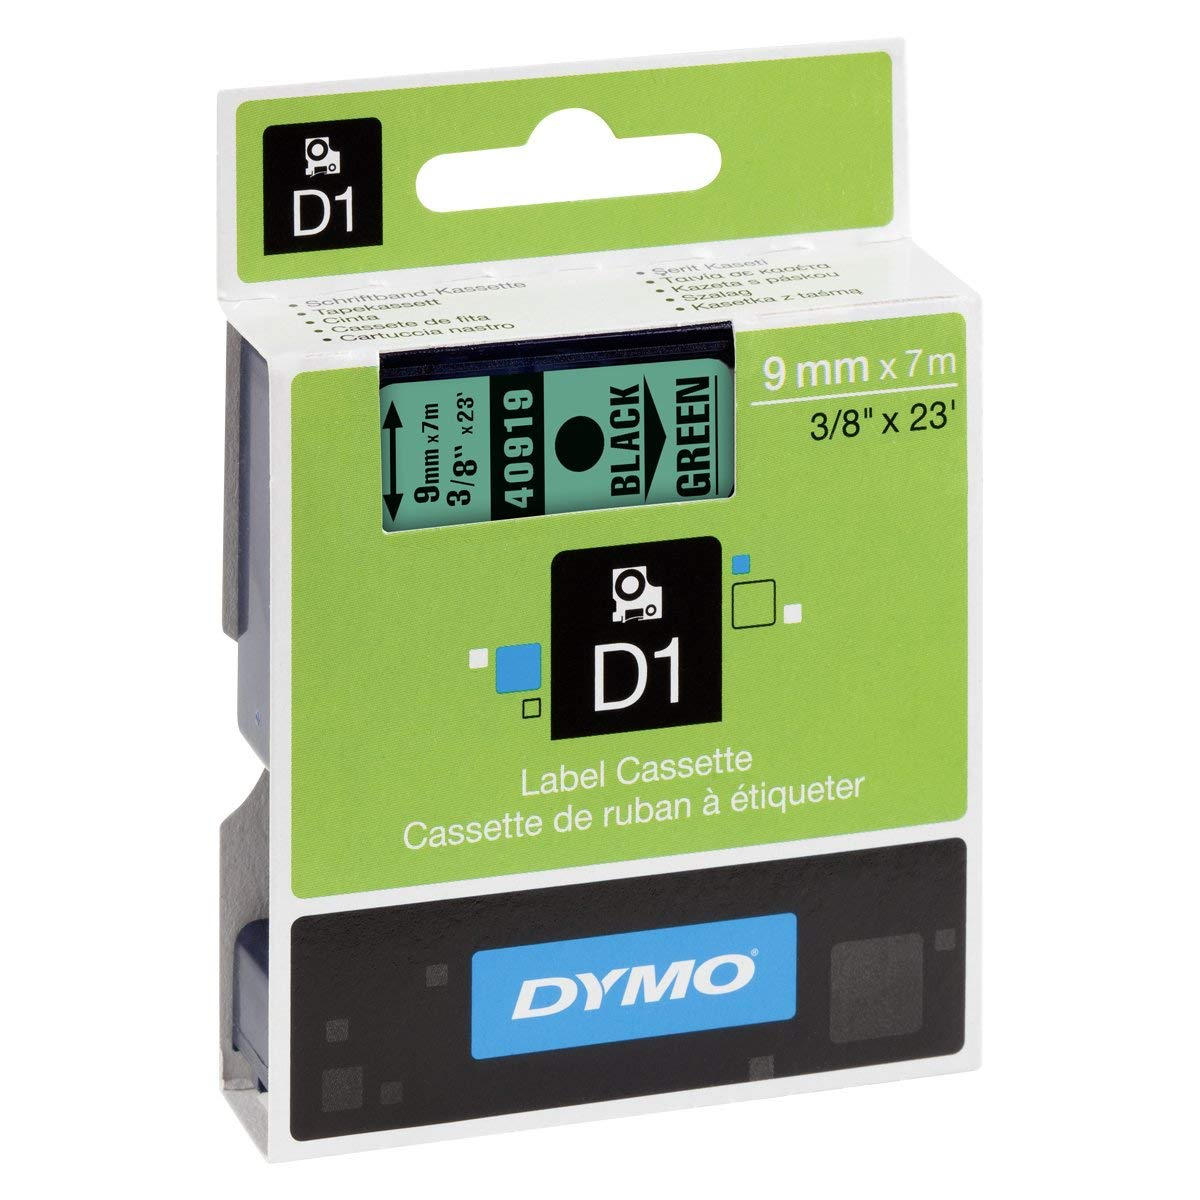 Dymo S0720740 (40919) D1 Standard Label Tape 9mm x 7m - Black on Green (pc)